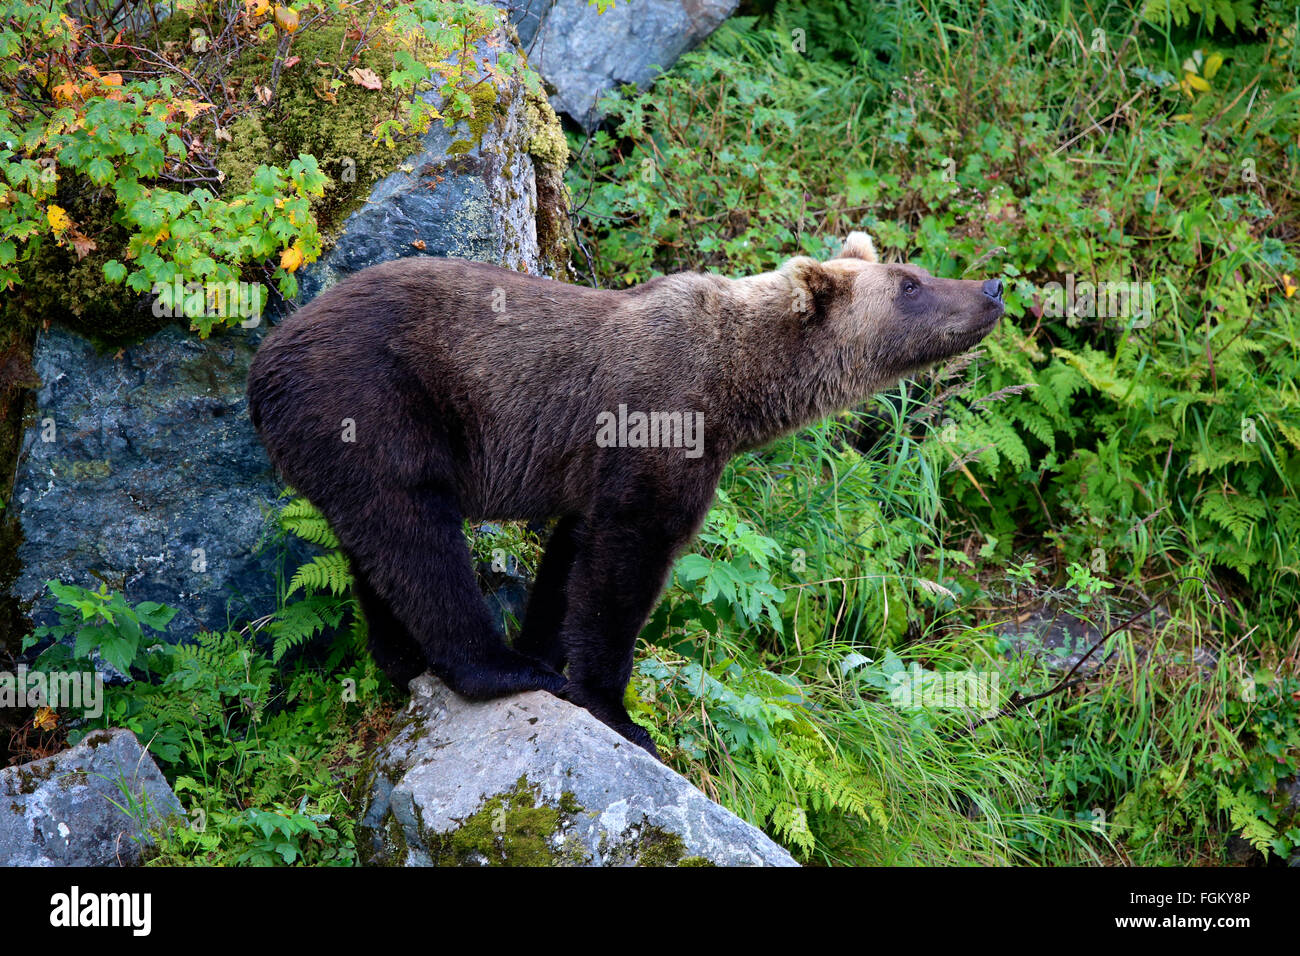 Grizzly Bear balancing on rock in Redoubt Bay, Alaska - Stock Image